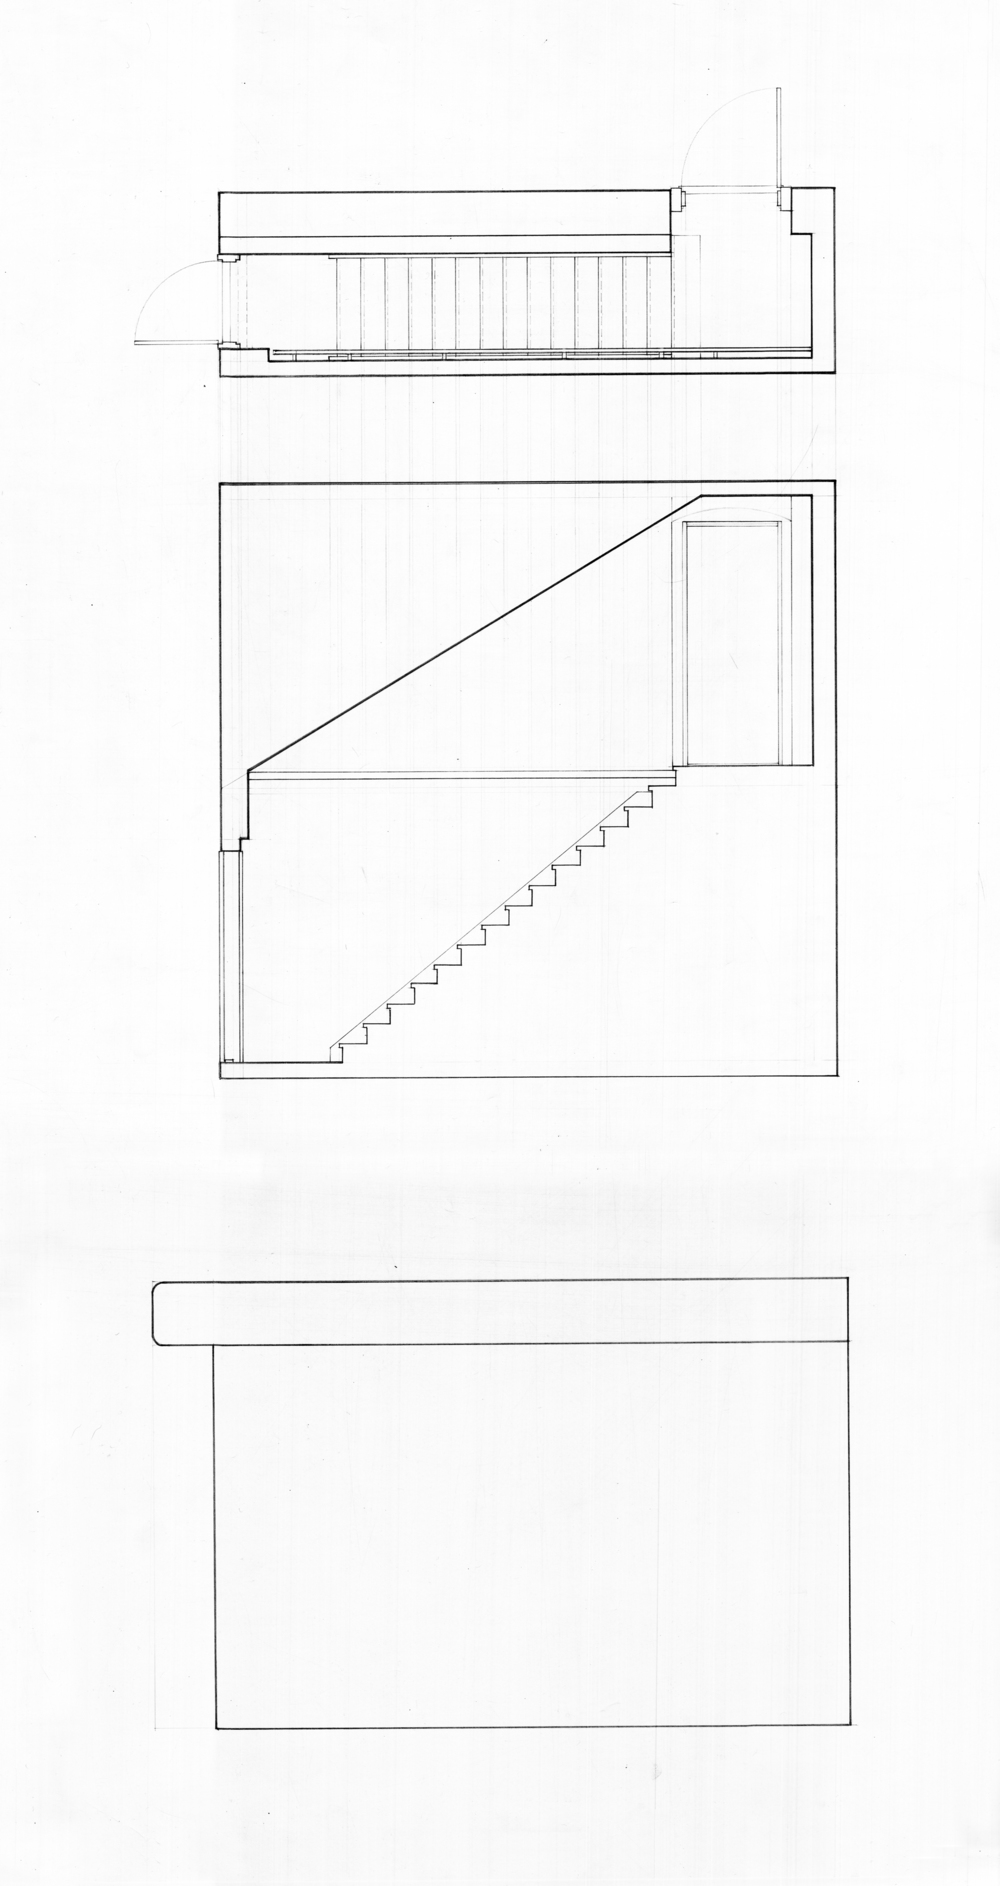 102_STAIRS_SECTION.jpg